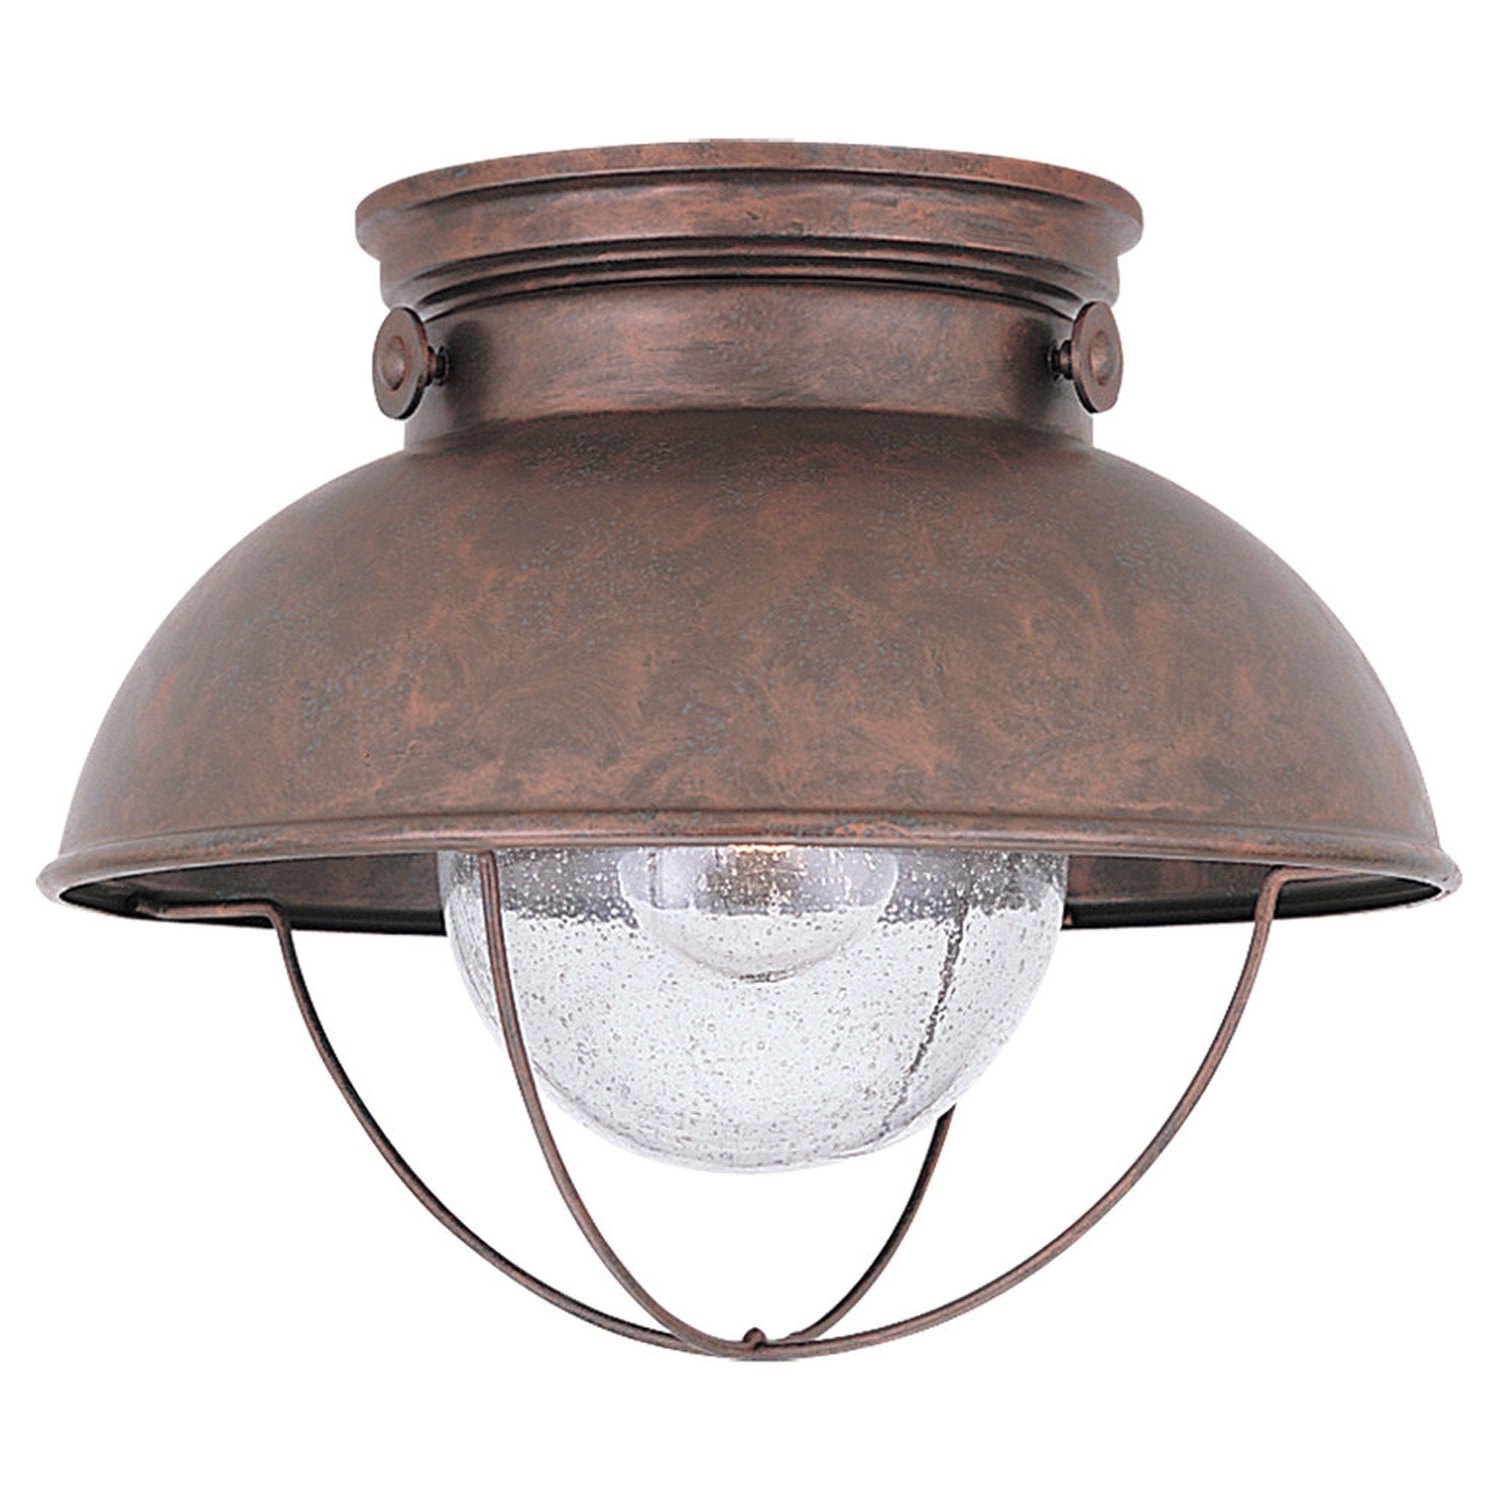 Exterior Light Fixtures In Bronze, Copper Intended For Best And Newest Commercial Outdoor Ceiling Lighting Fixtures (Gallery 6 of 20)